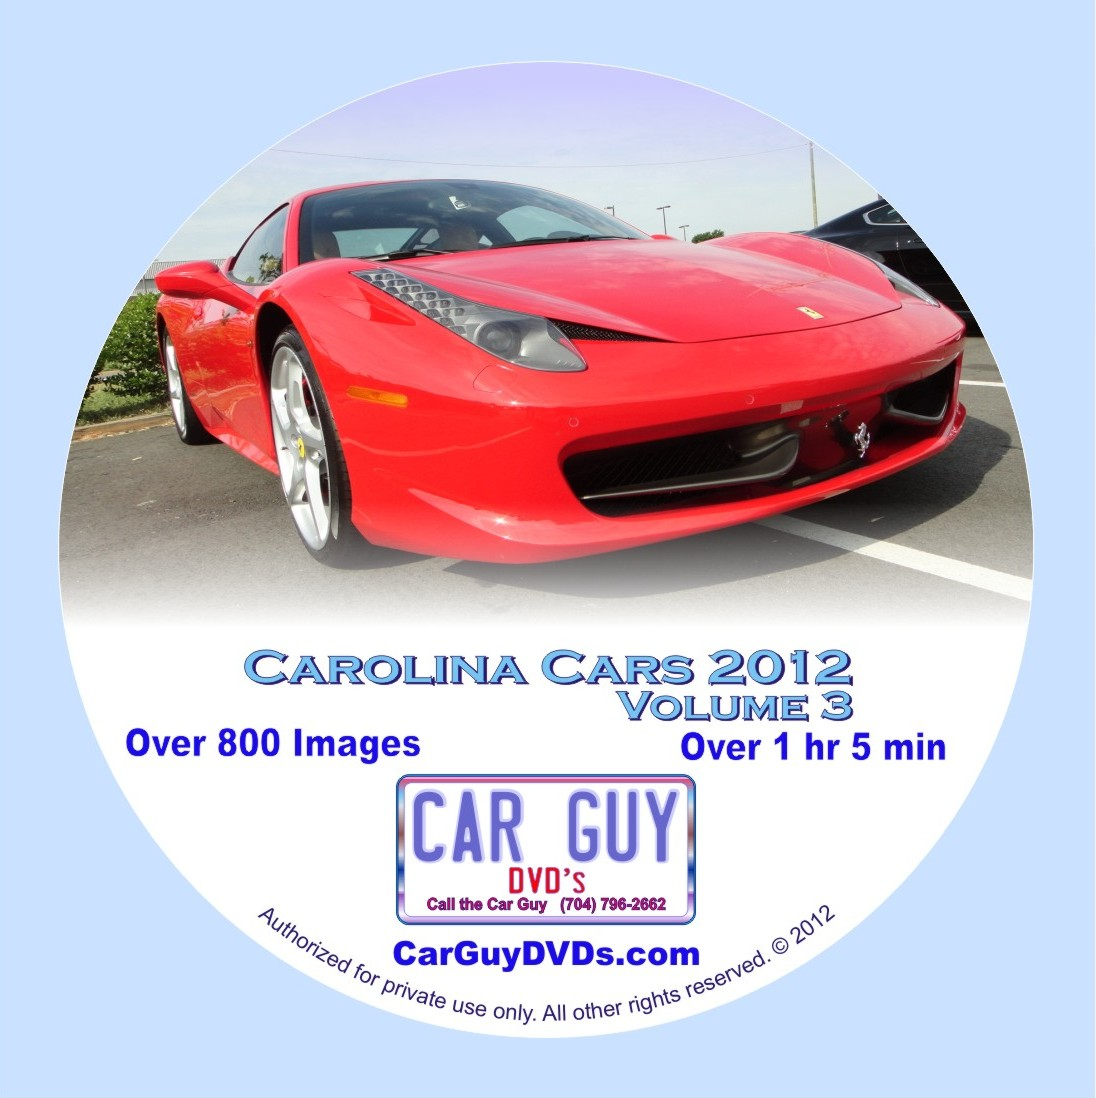 Carolina Cars 2012 Volume 3